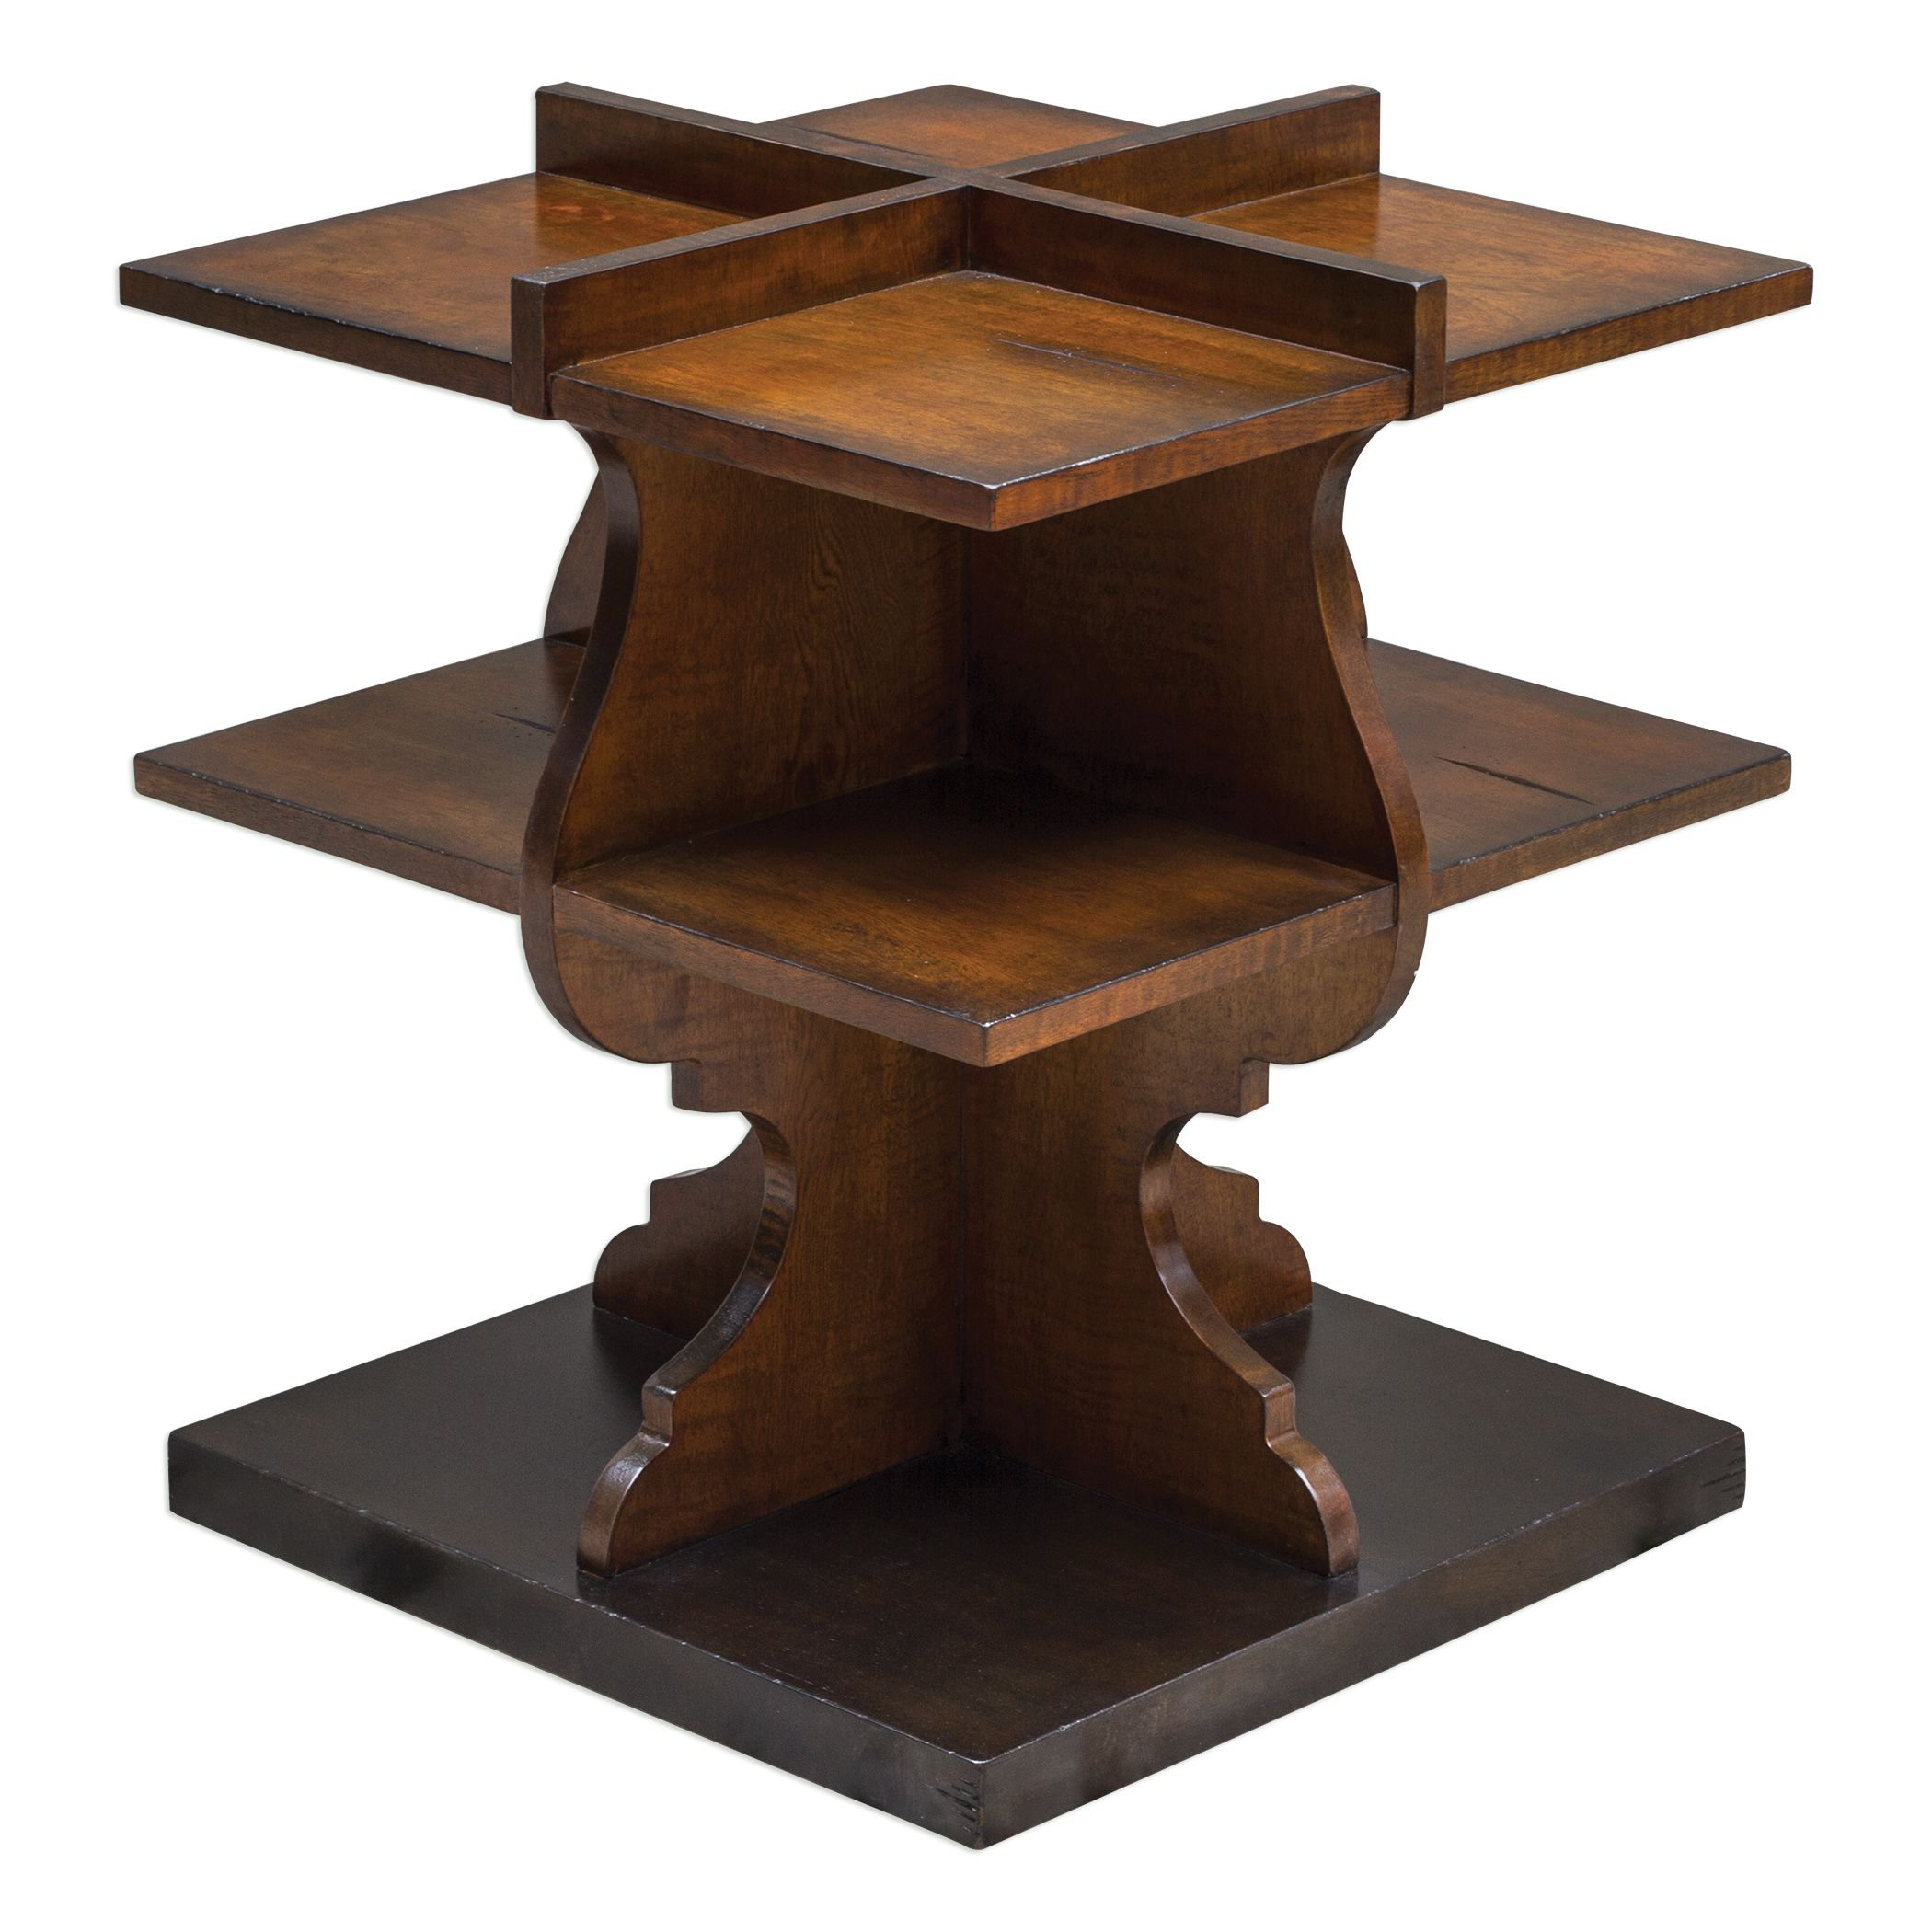 MY SWANKY HOME Antique Style Curved Wood Shelf Pedestal Table | Dark Display Classic by MY SWANKY HOME